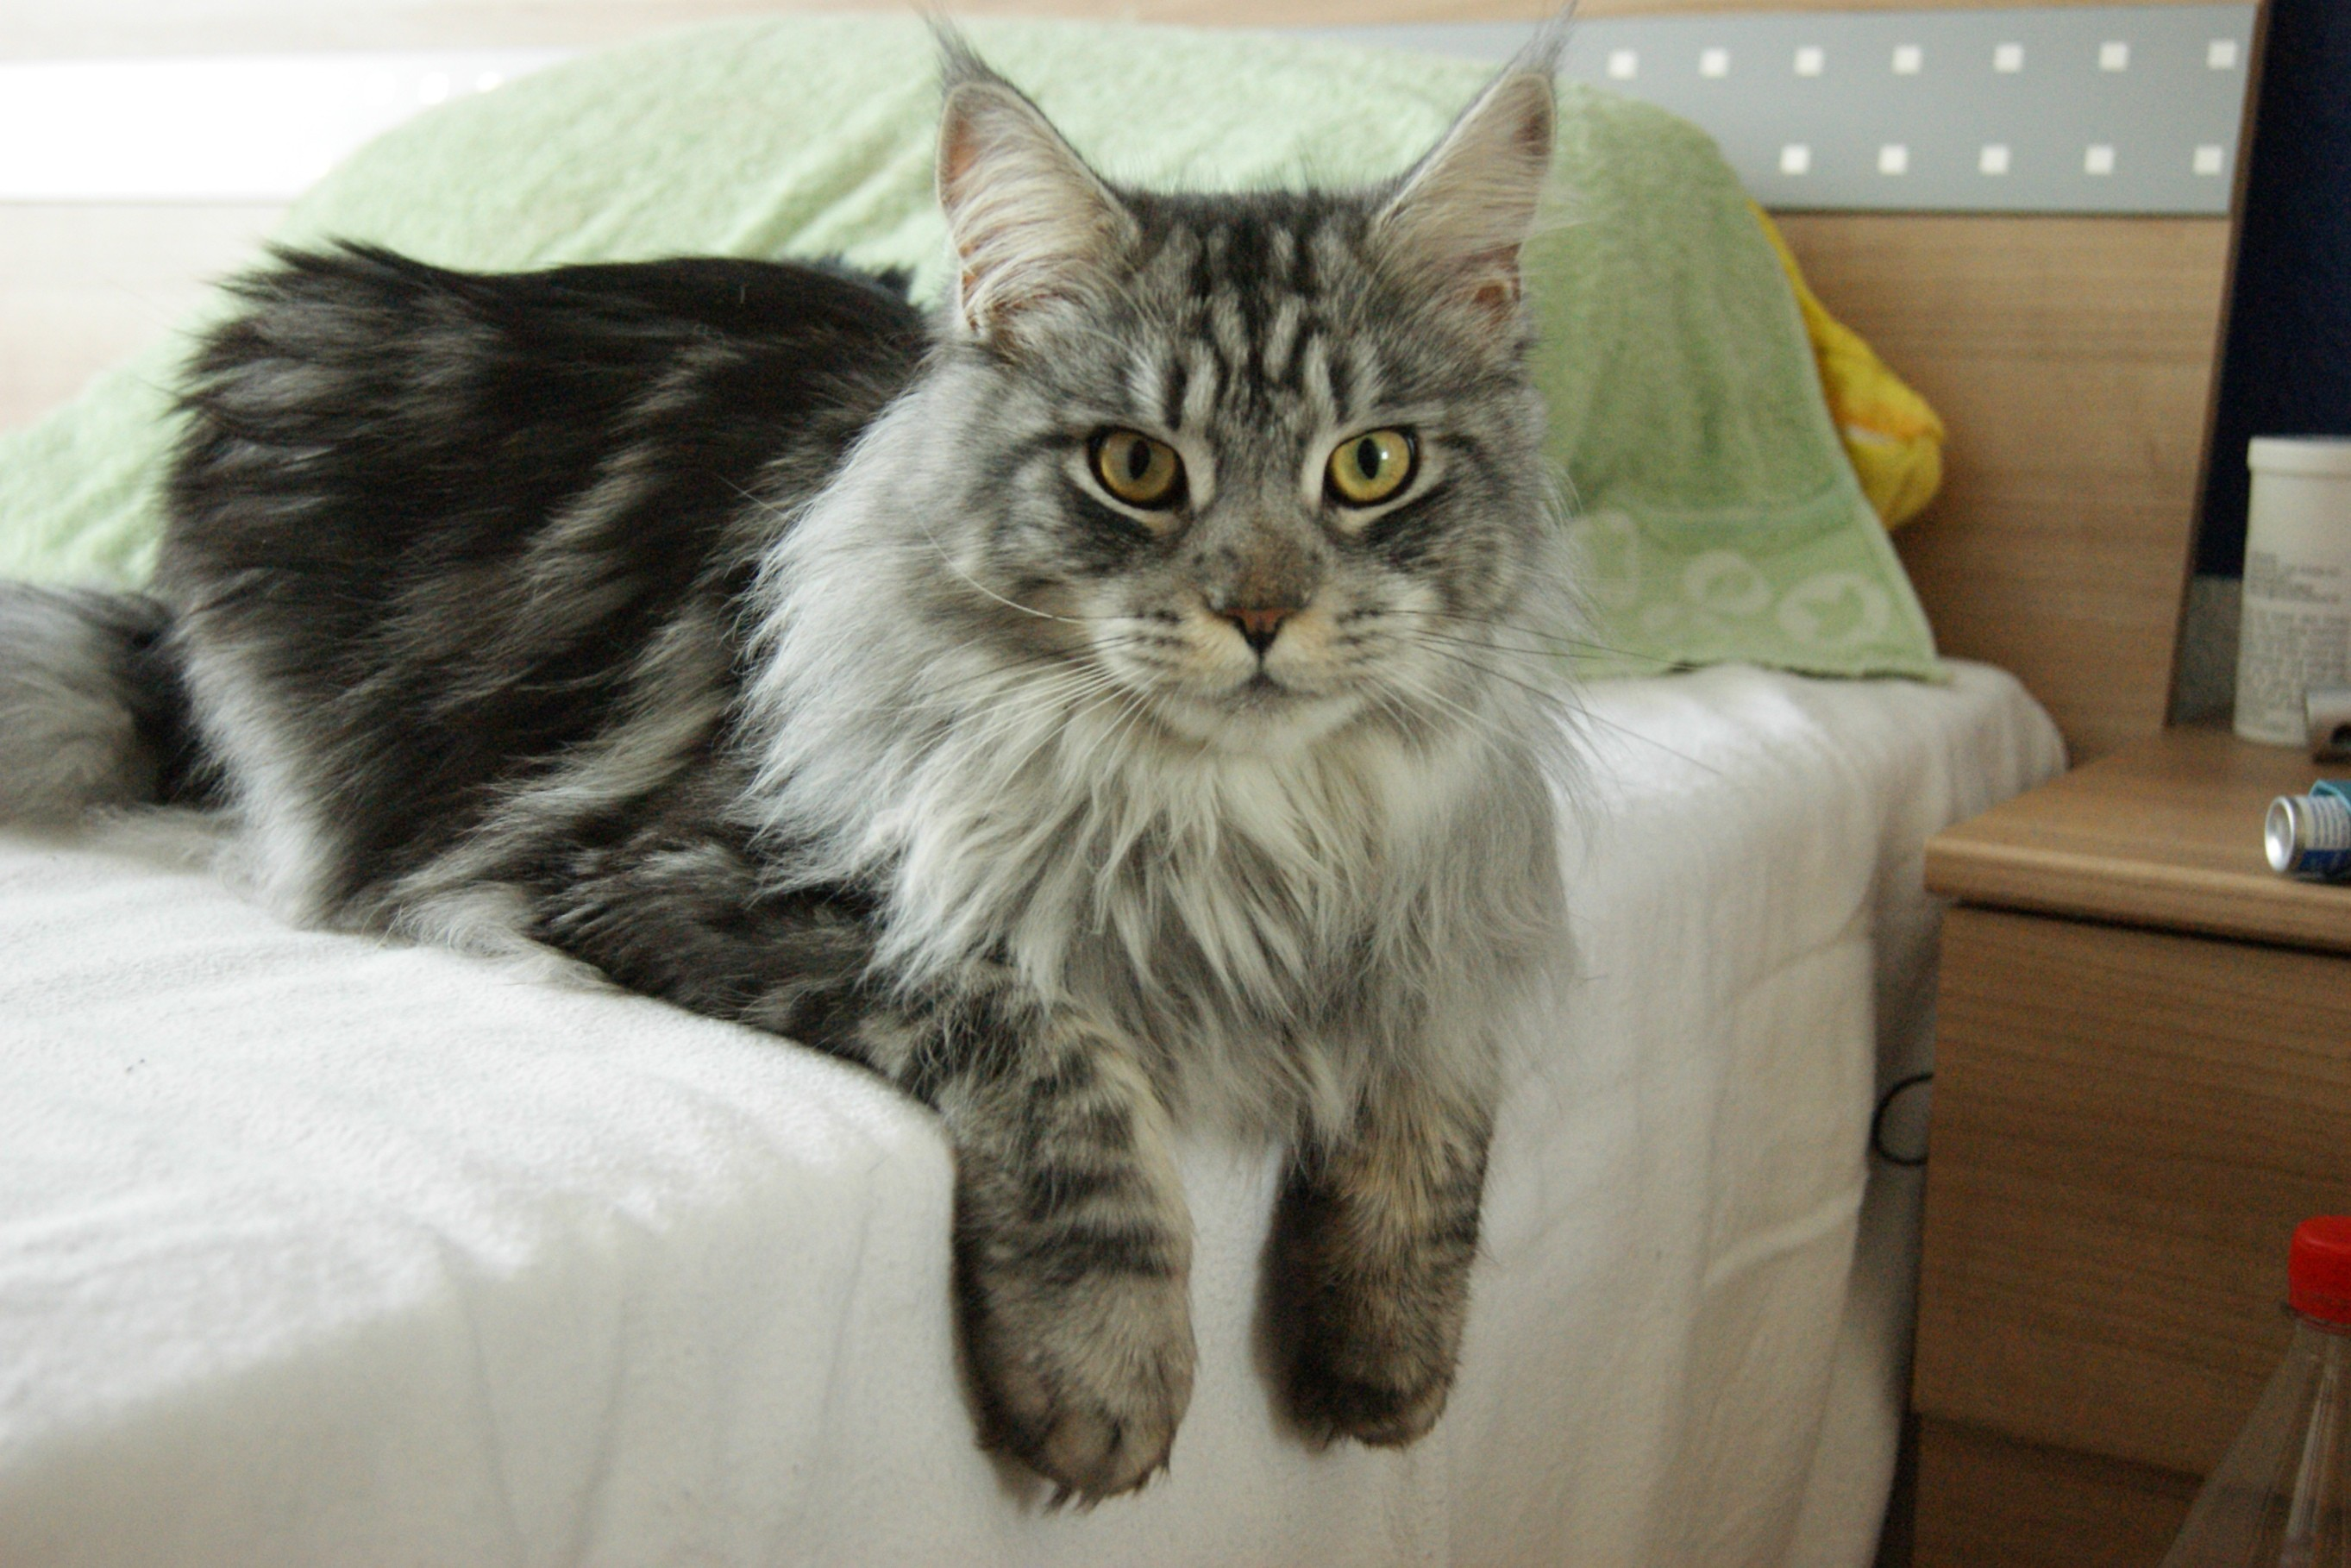 Res: 2726x1818, Maine Coon on a sofa photo